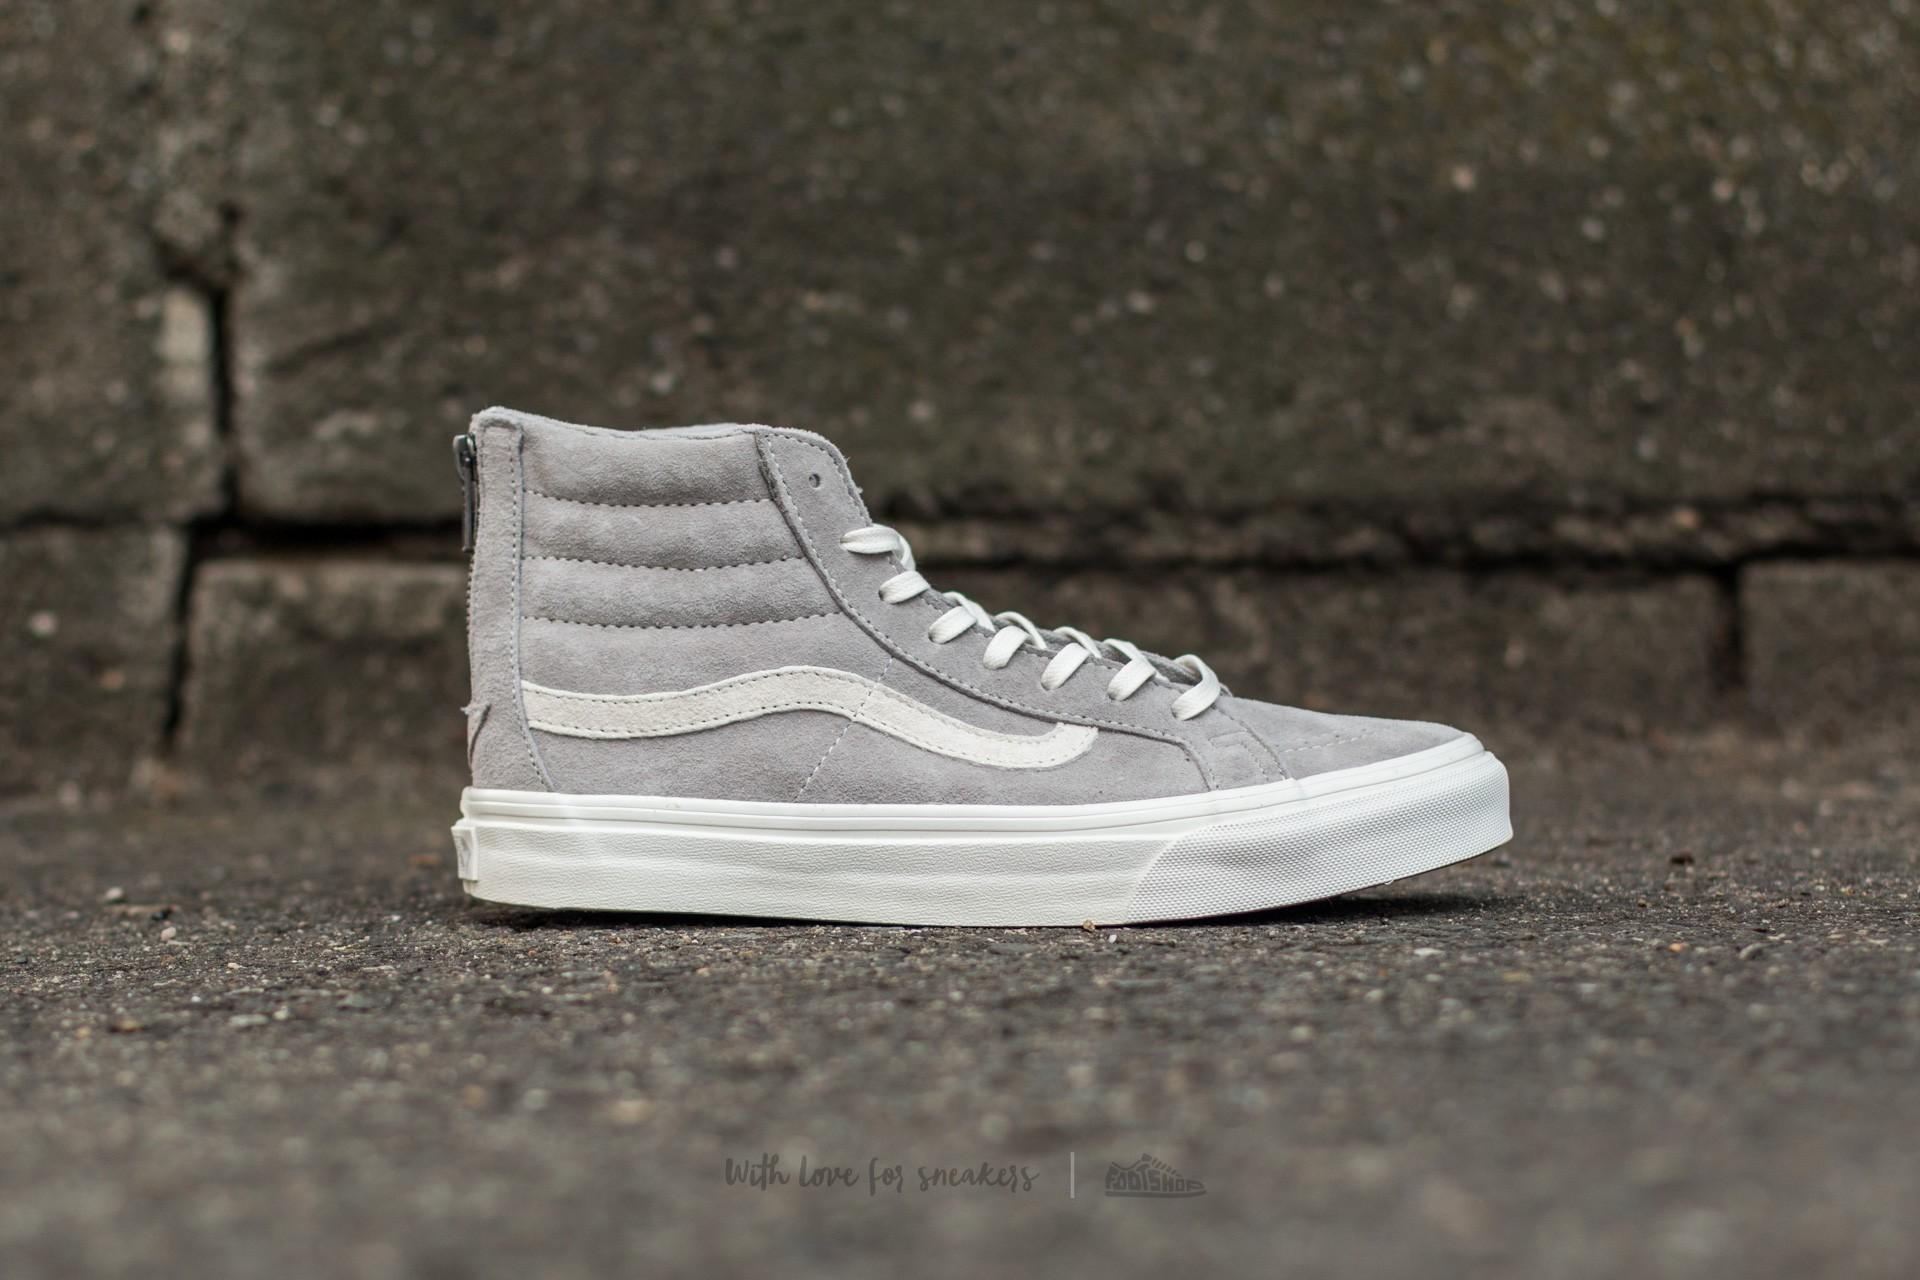 9b66ba5012 Lyst - Vans Sk8-hi Slim Zip (scotchgard) Cool Grey  Blanc in Gray